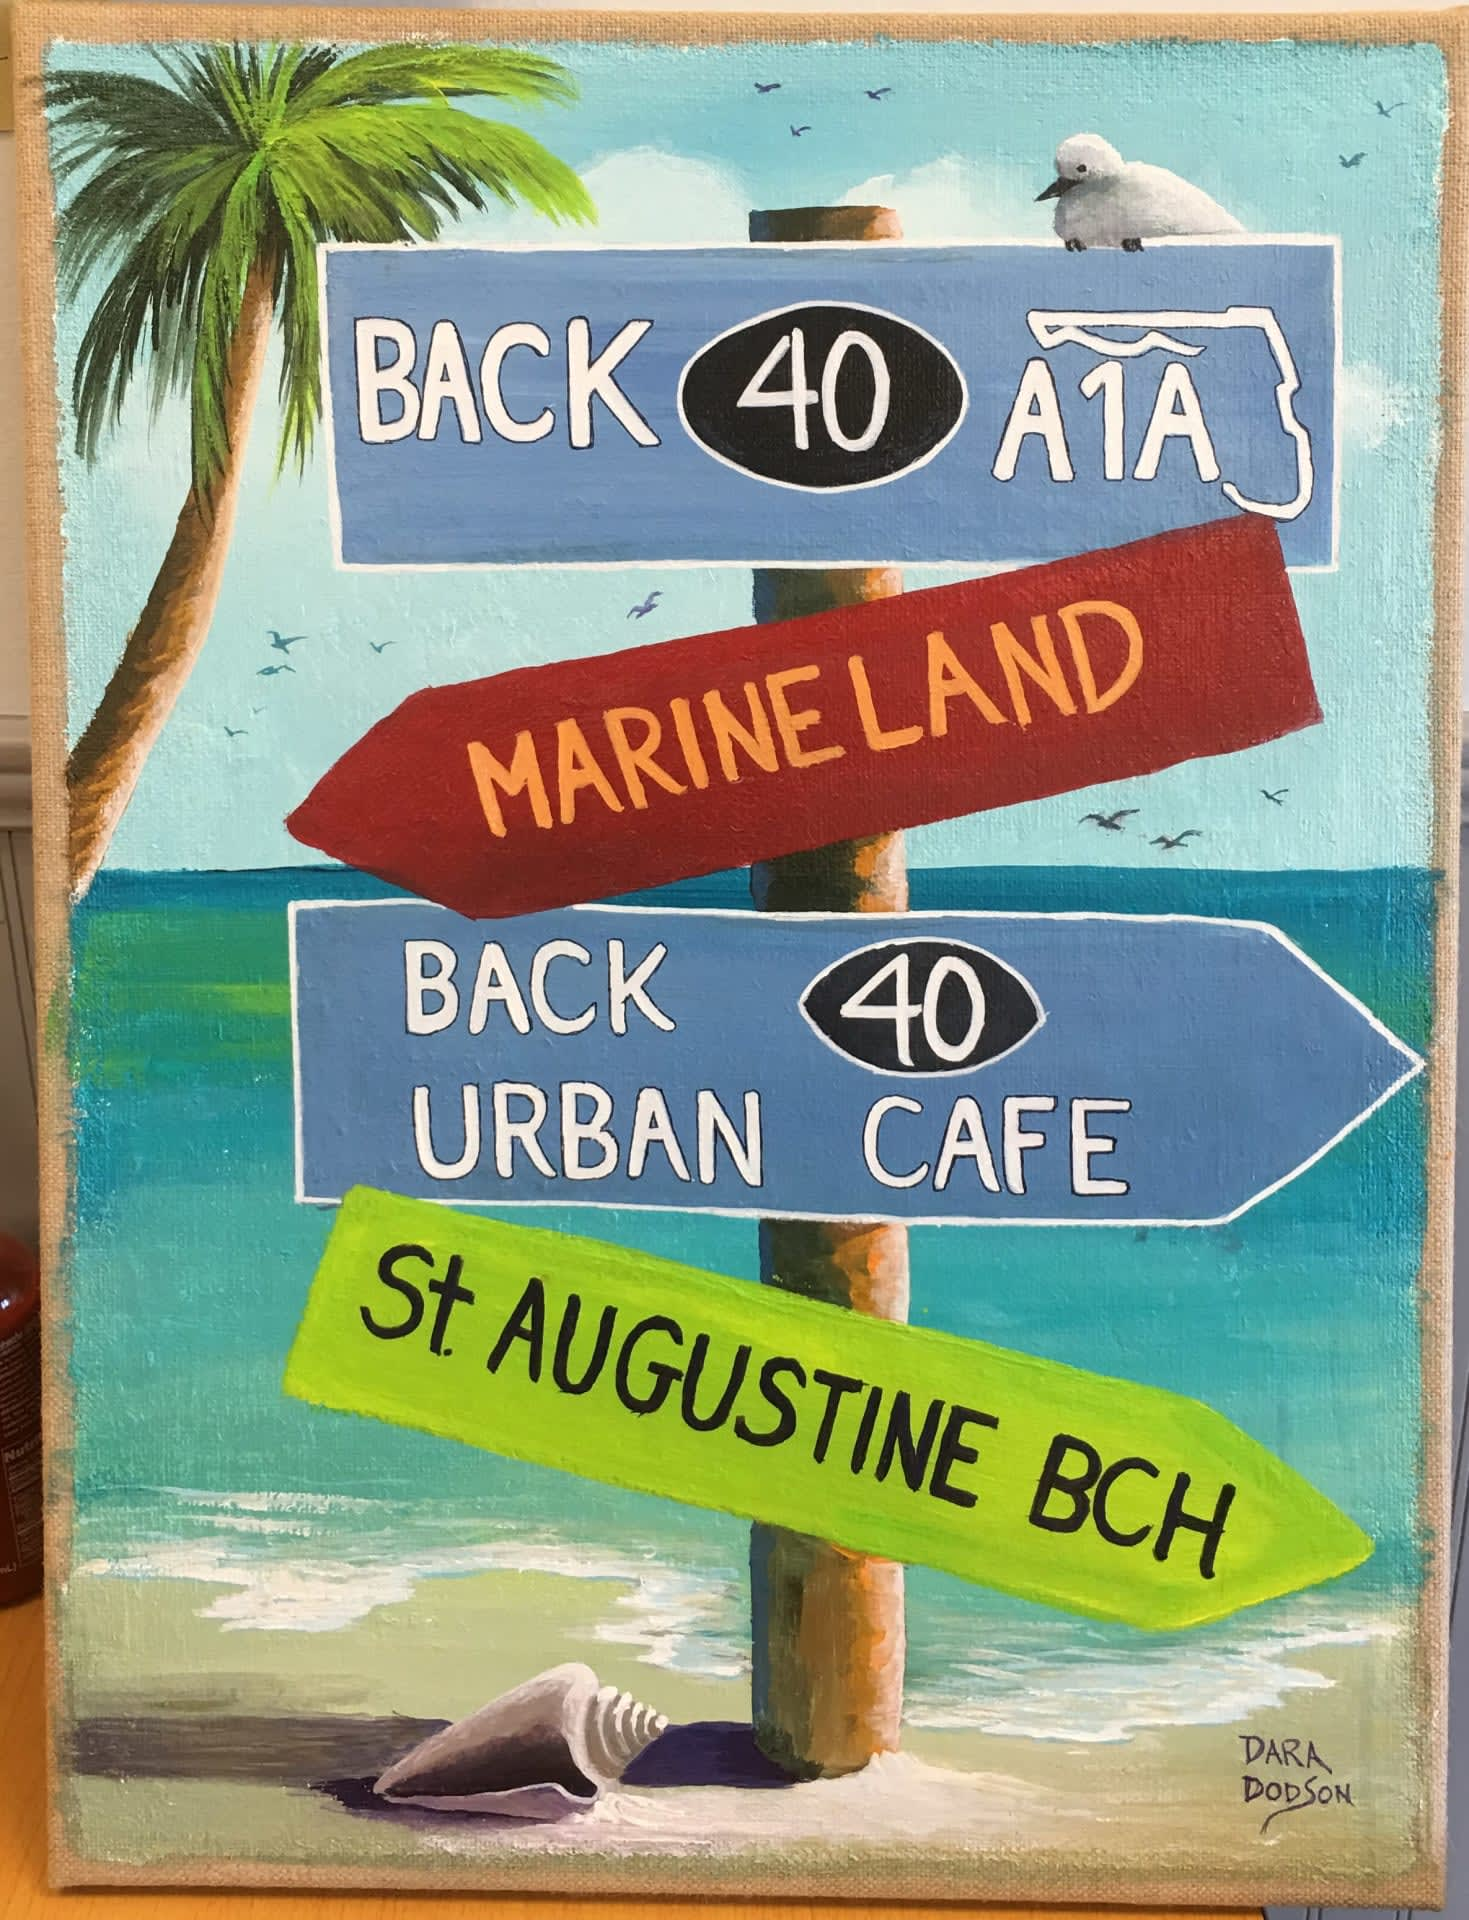 The Back 40 A1A